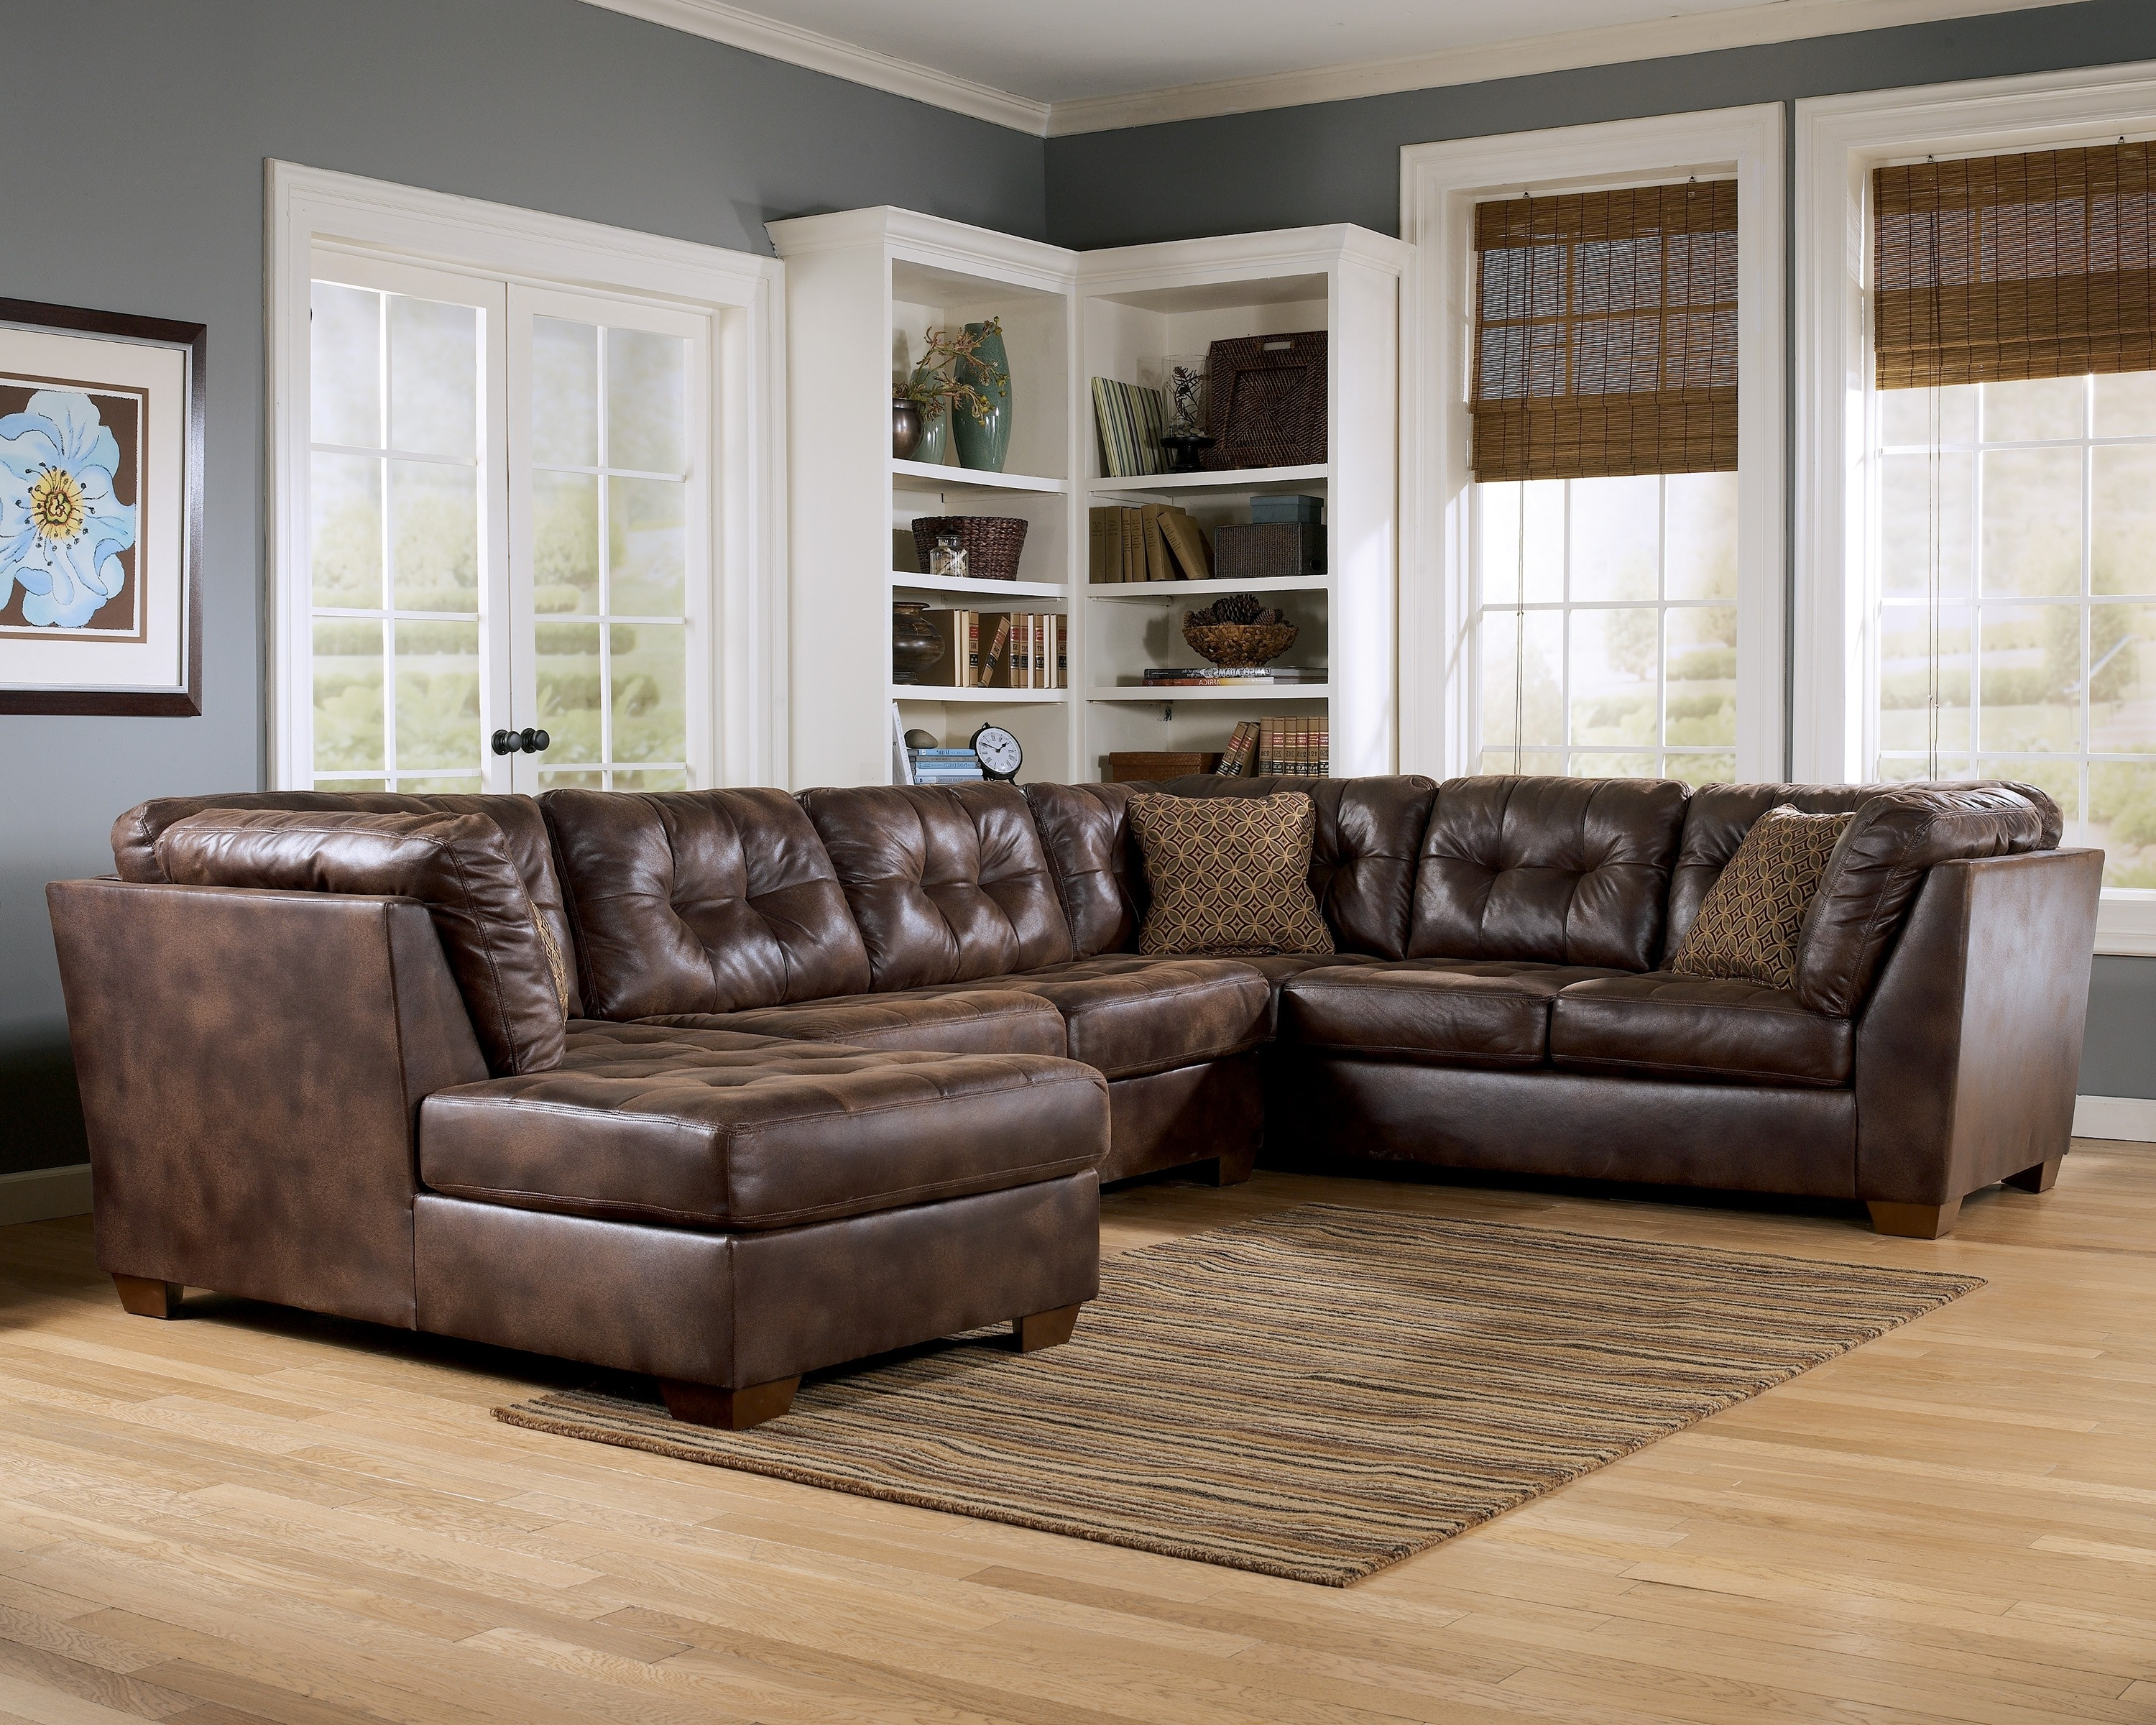 Preferred Chocolate Brown Sectional Sofas Throughout Best Chocolate Brown Sectional Sofas 16 For Jonathan Louis (View 4 of 20)